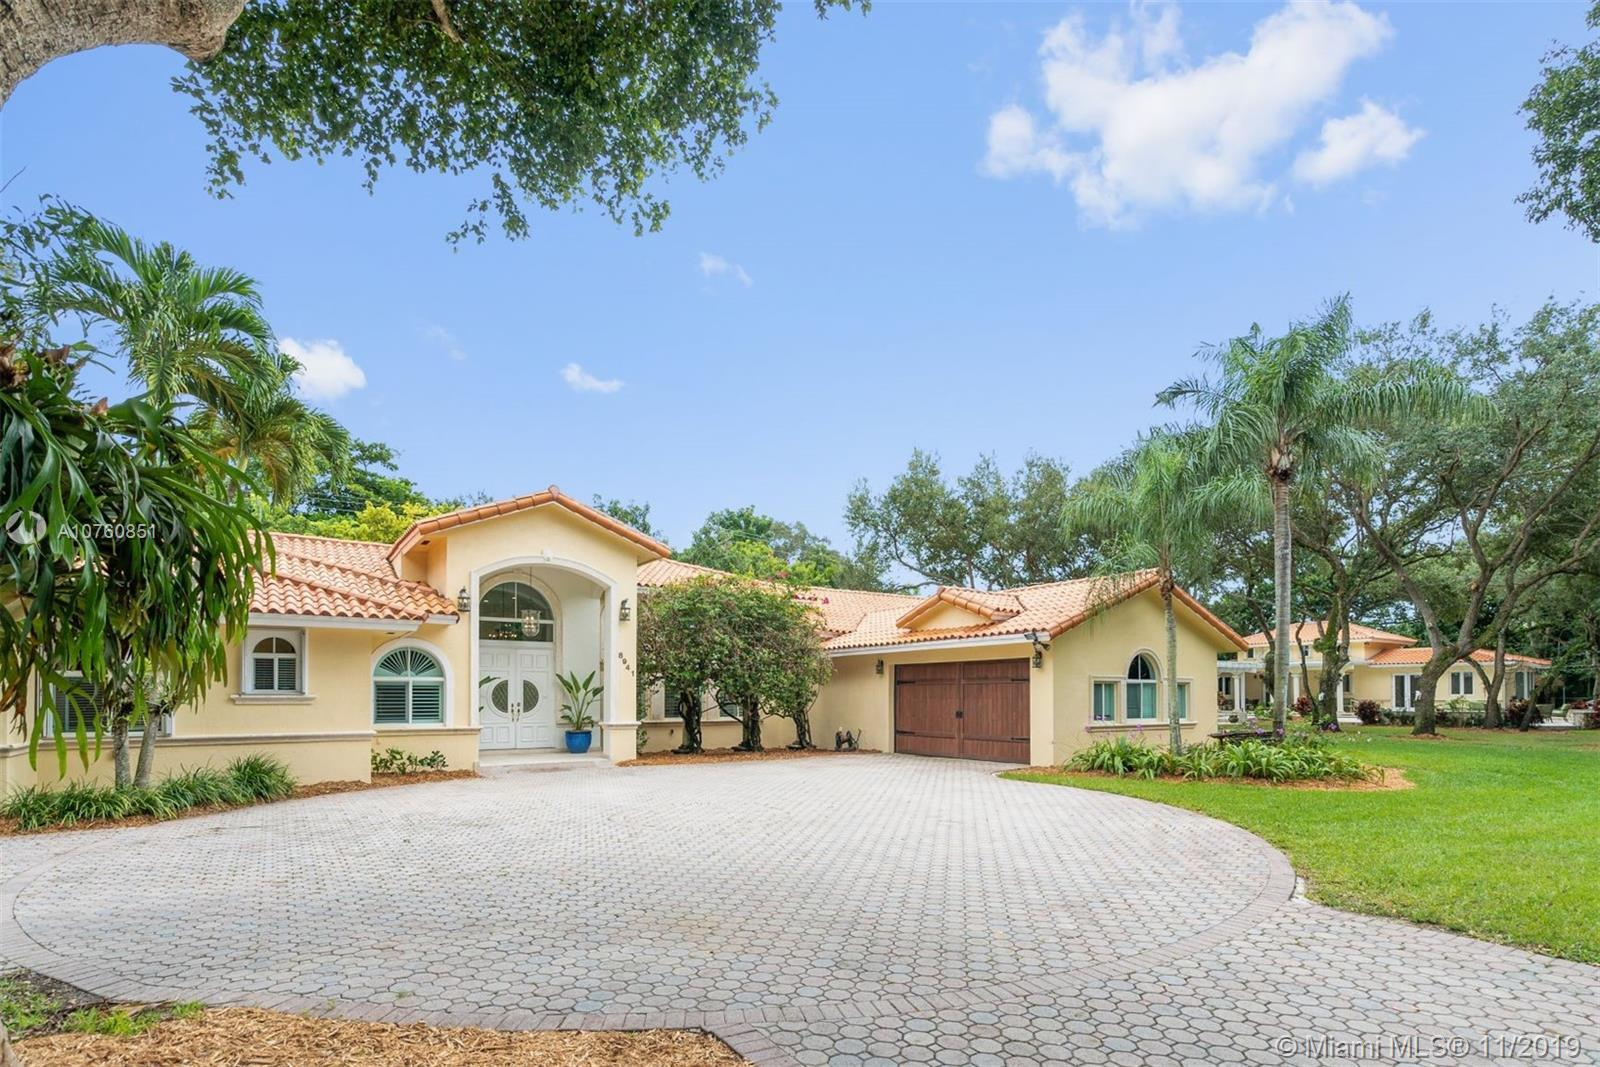 8941 SW 65th Ct, Pinecrest, FL, 33156